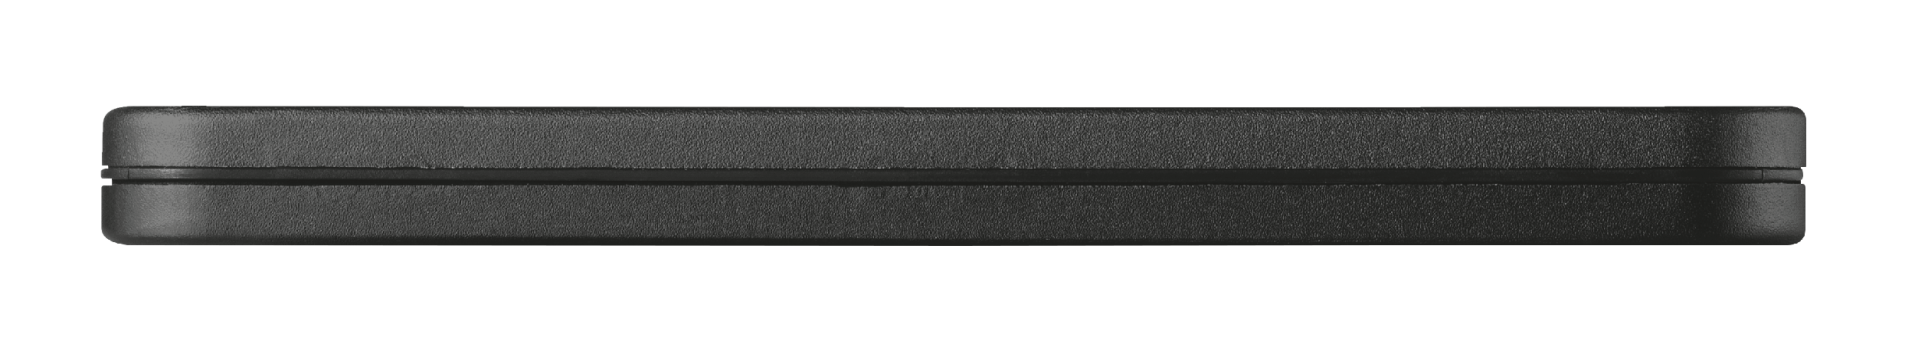 PowerBank 1800T Ultra-thin Portable Charger - black pattern-Side